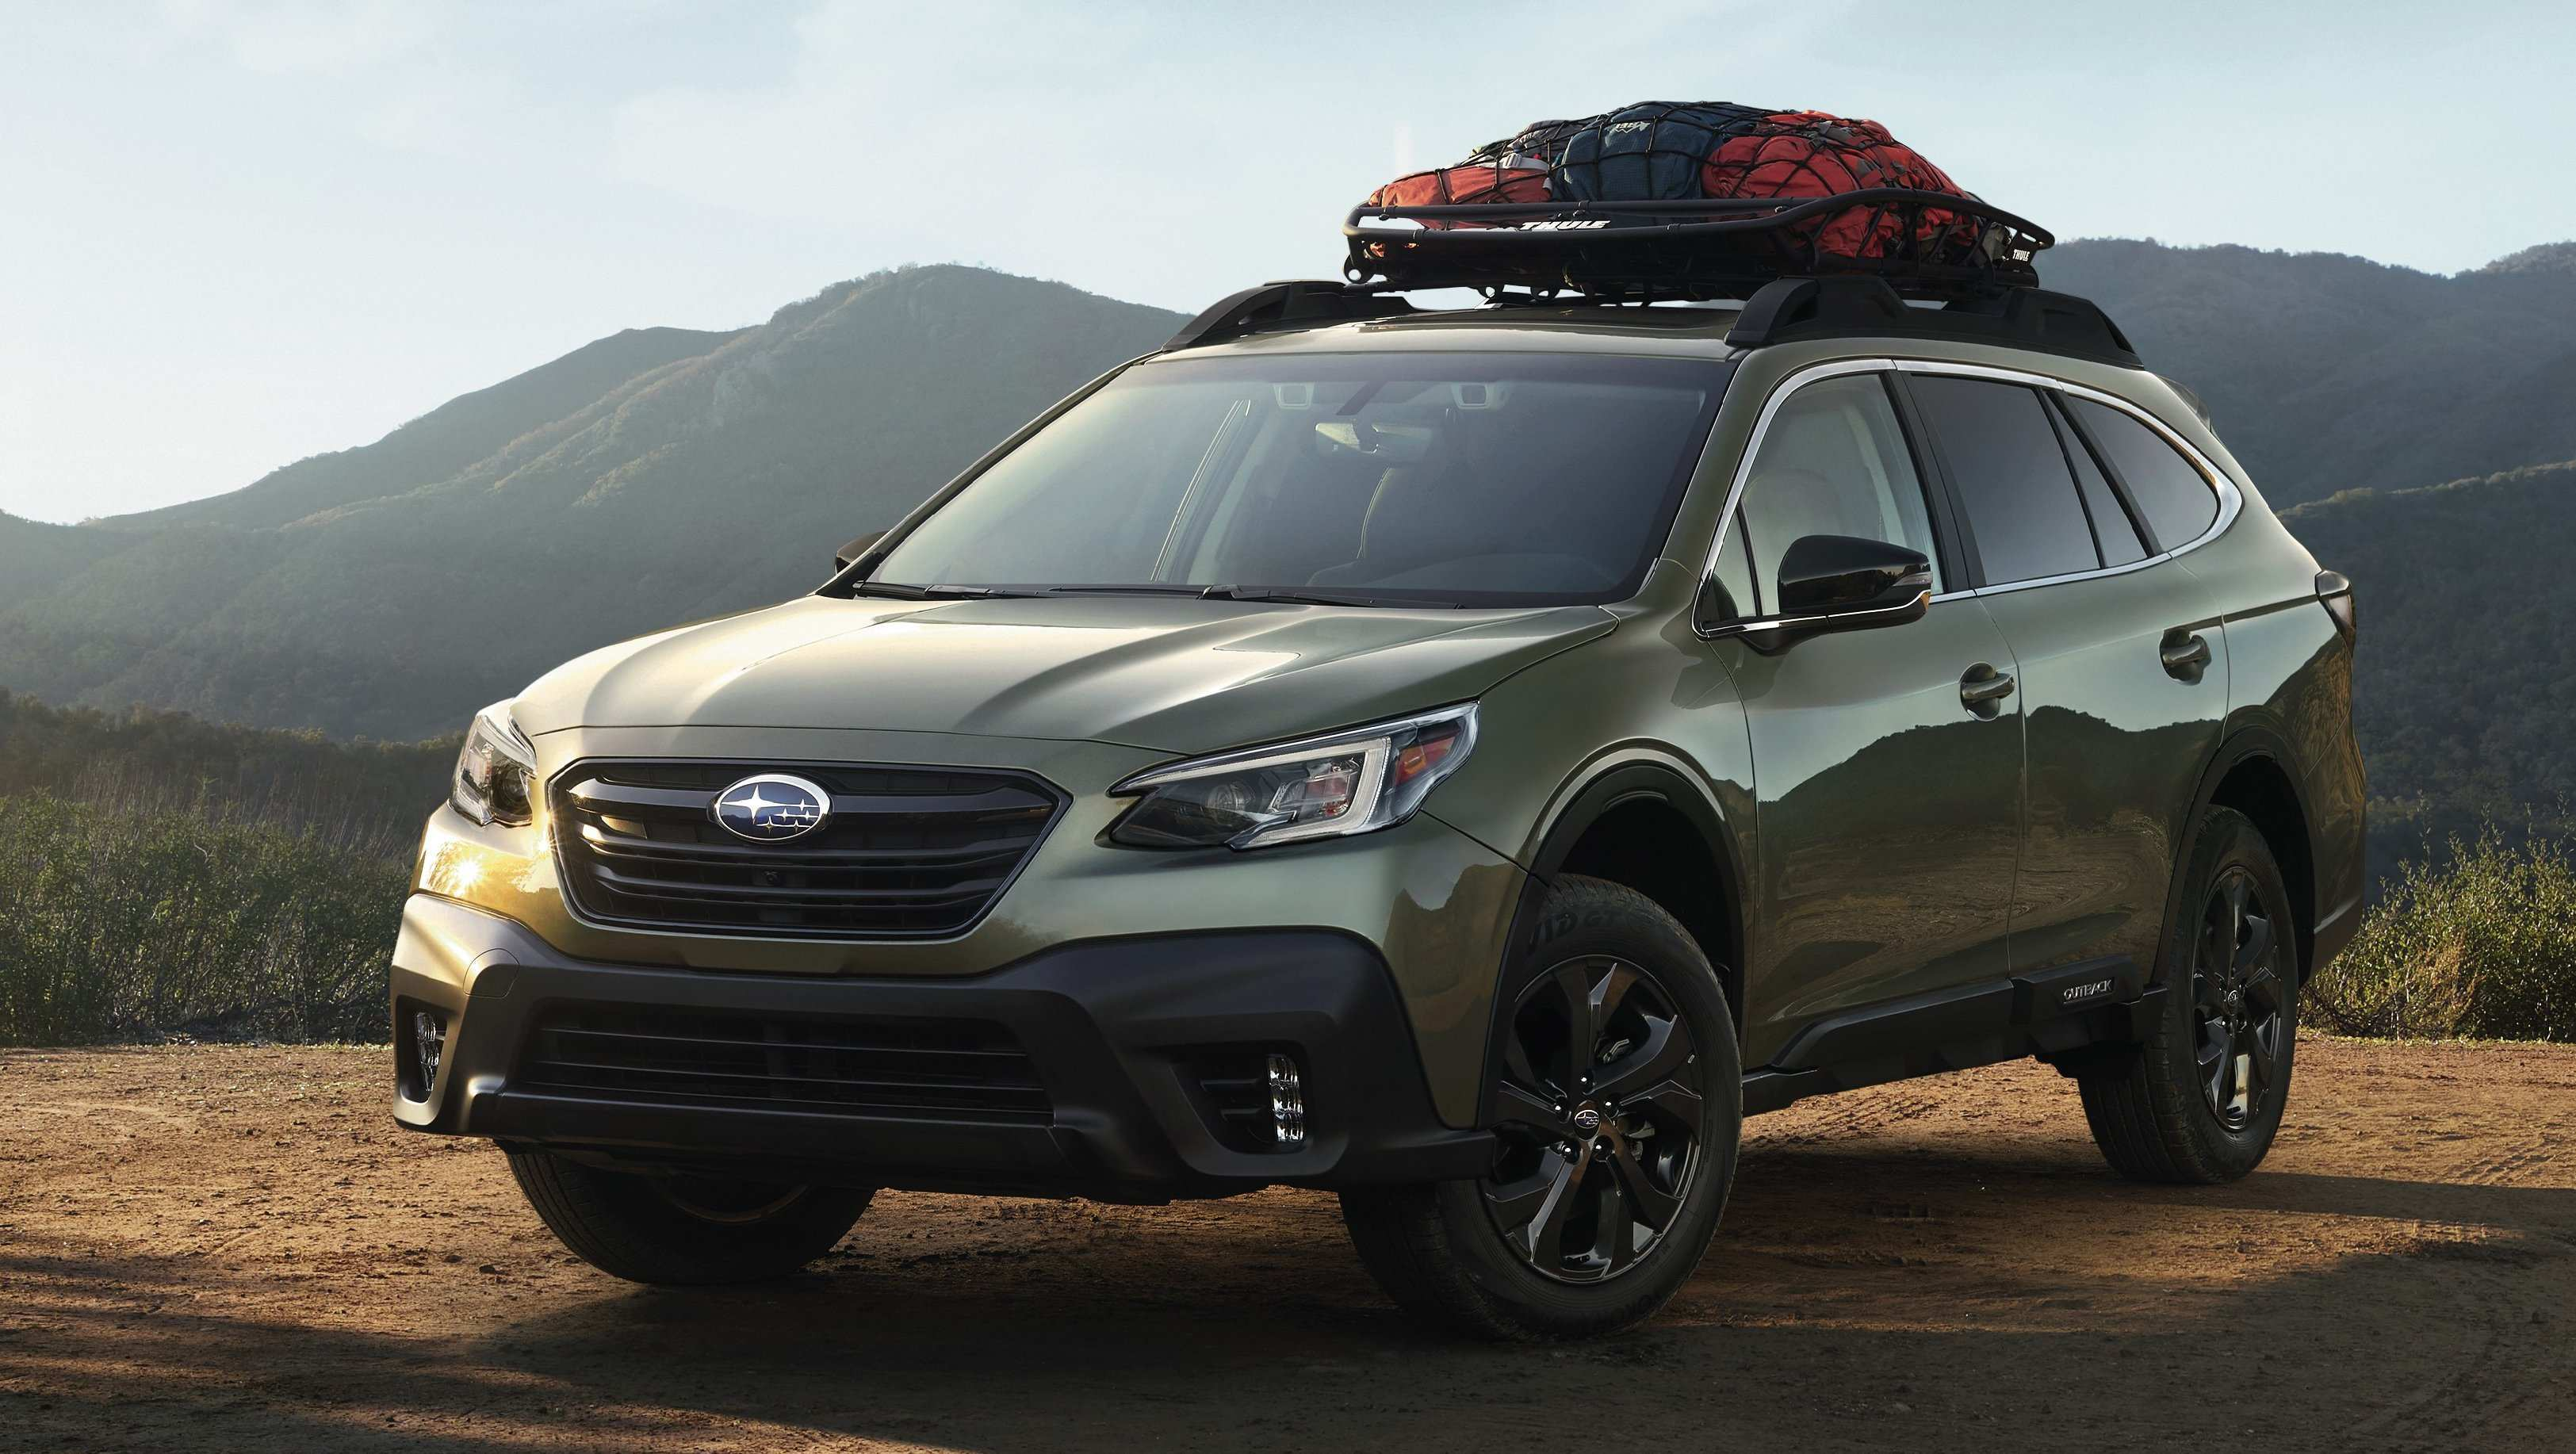 81 All New Subaru Outback 2020 Price Model with Subaru Outback 2020 Price